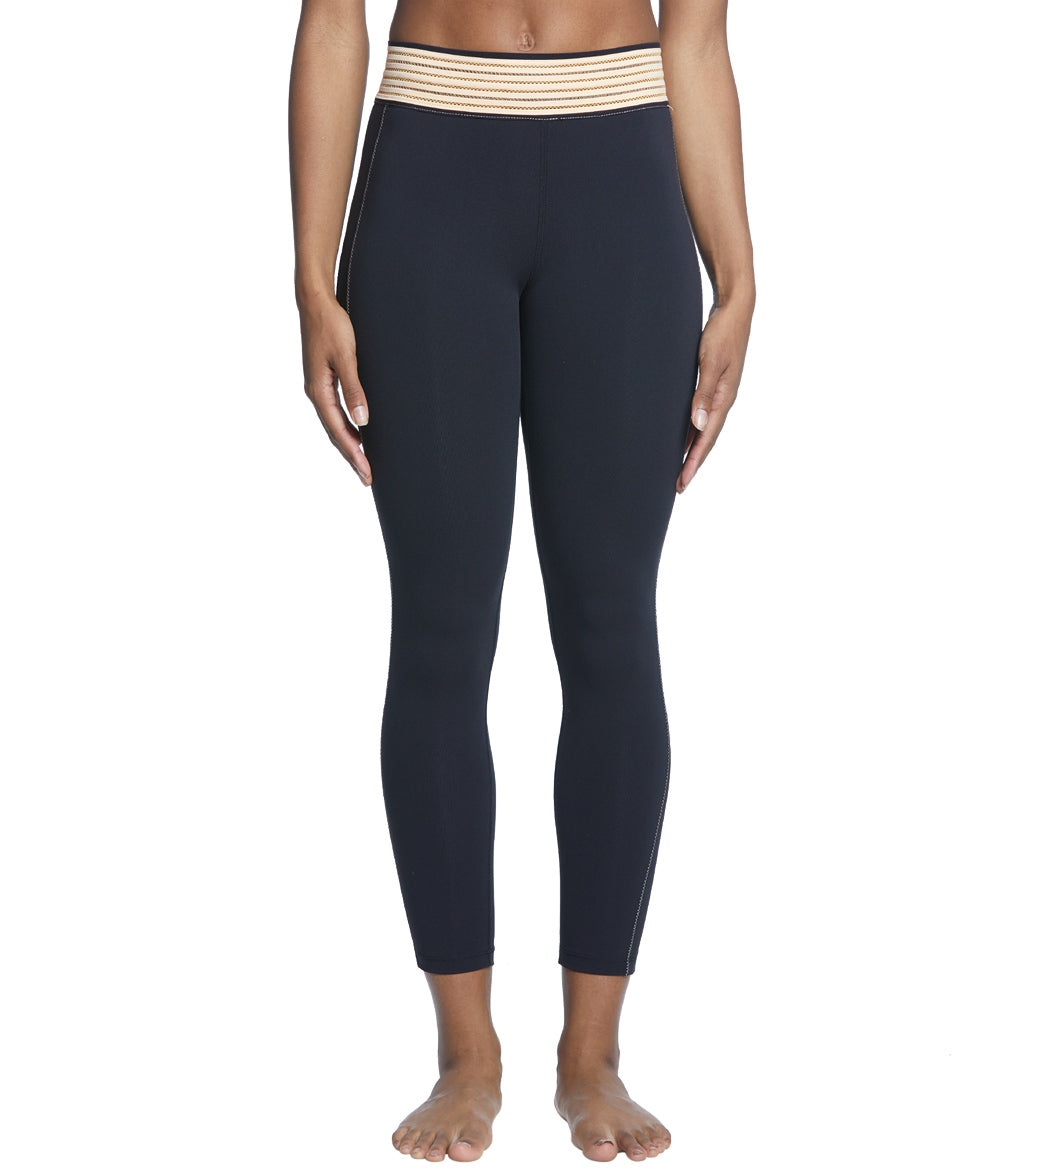 Free People Movement Solid Practice Makes Perfect Yoga Leggings - Black Spandex